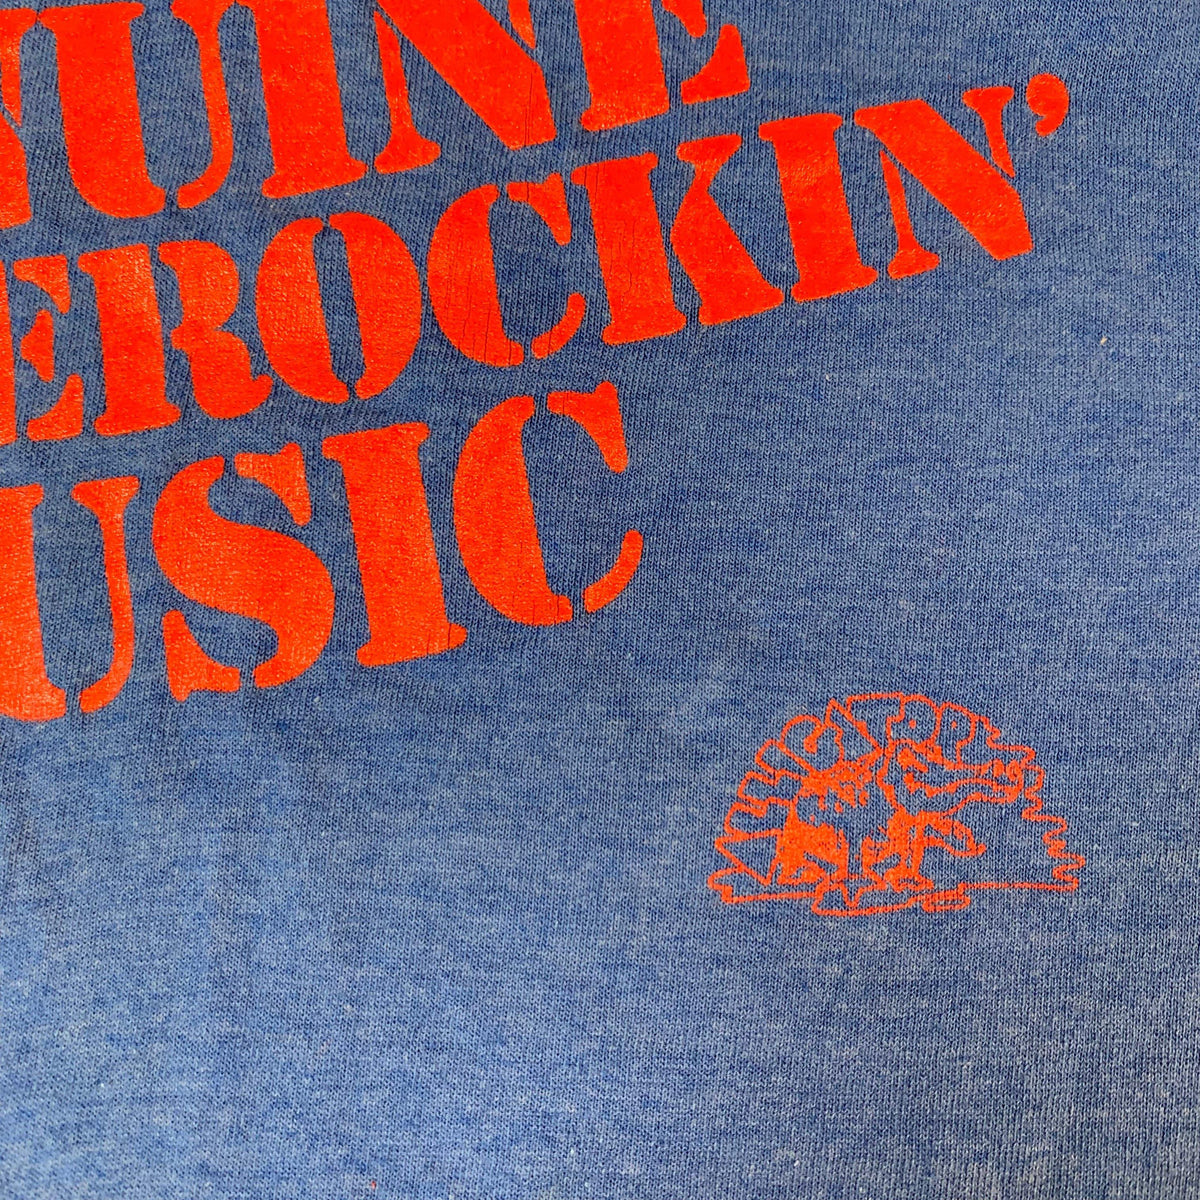 "Vintage Alligator Records ""Genuine Houserockin' Music"" T-Shirt"